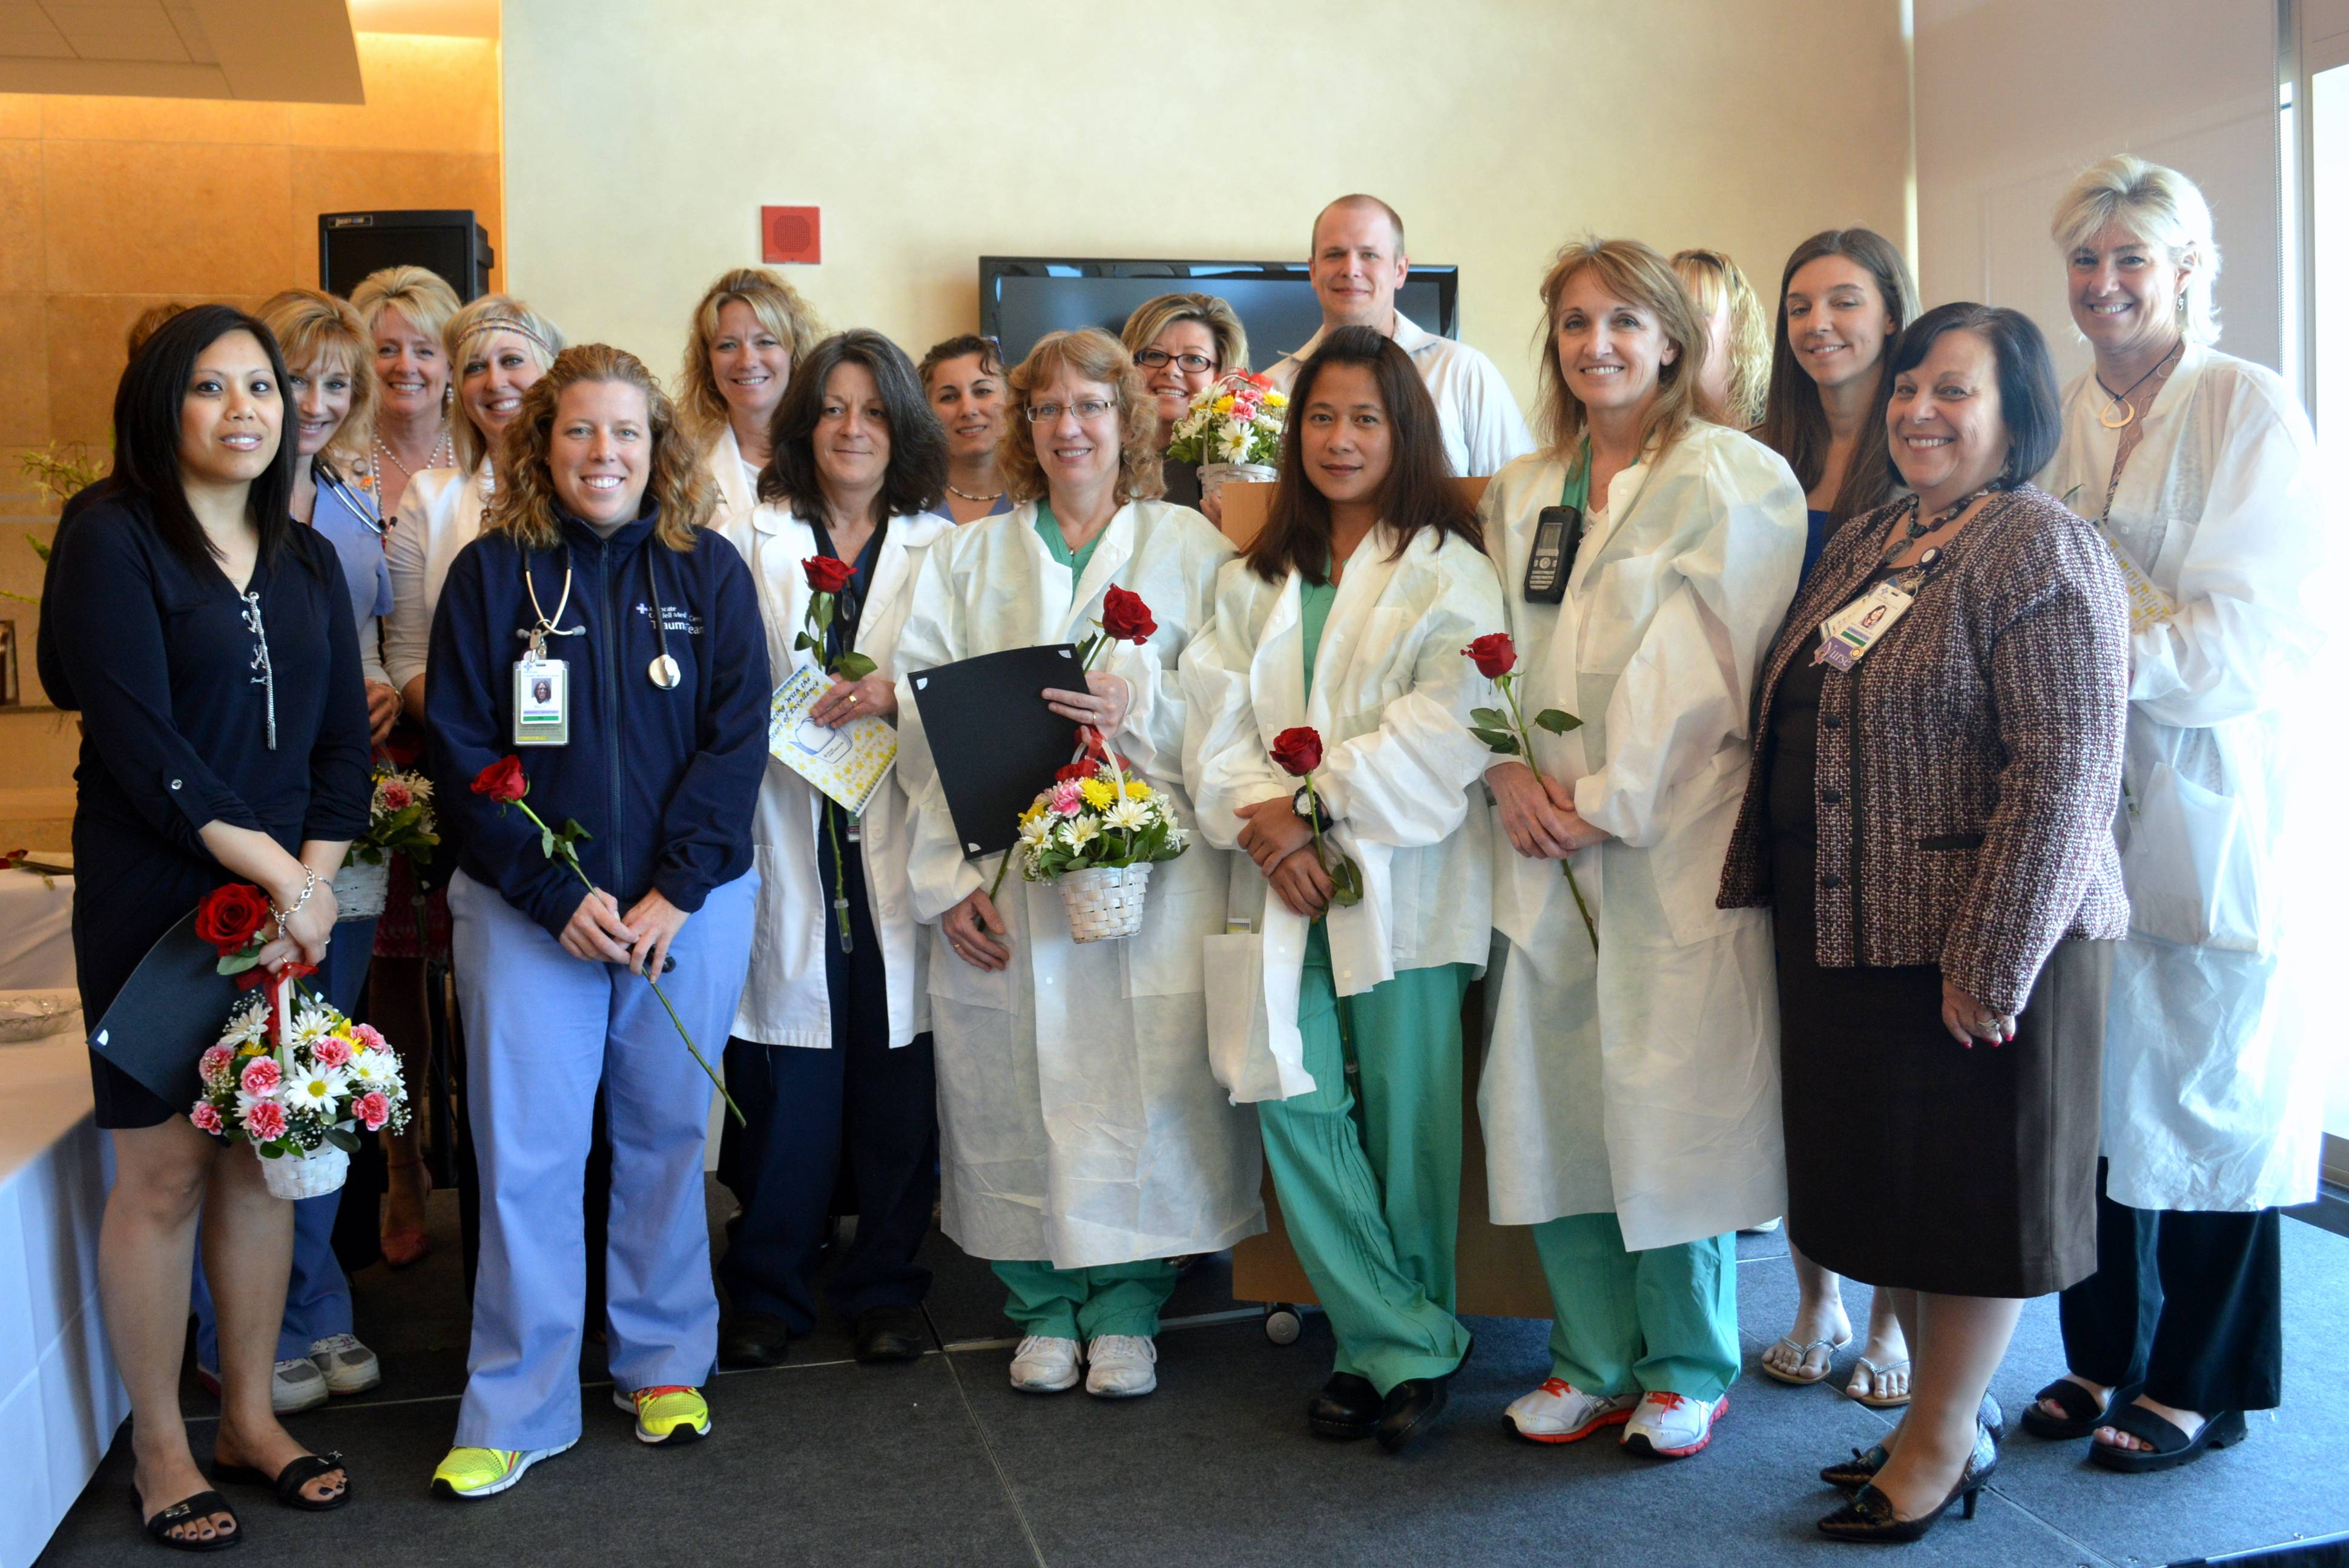 Nominated nurses gather at Advocate Condell's annual award ceremony during National Nurses Week.